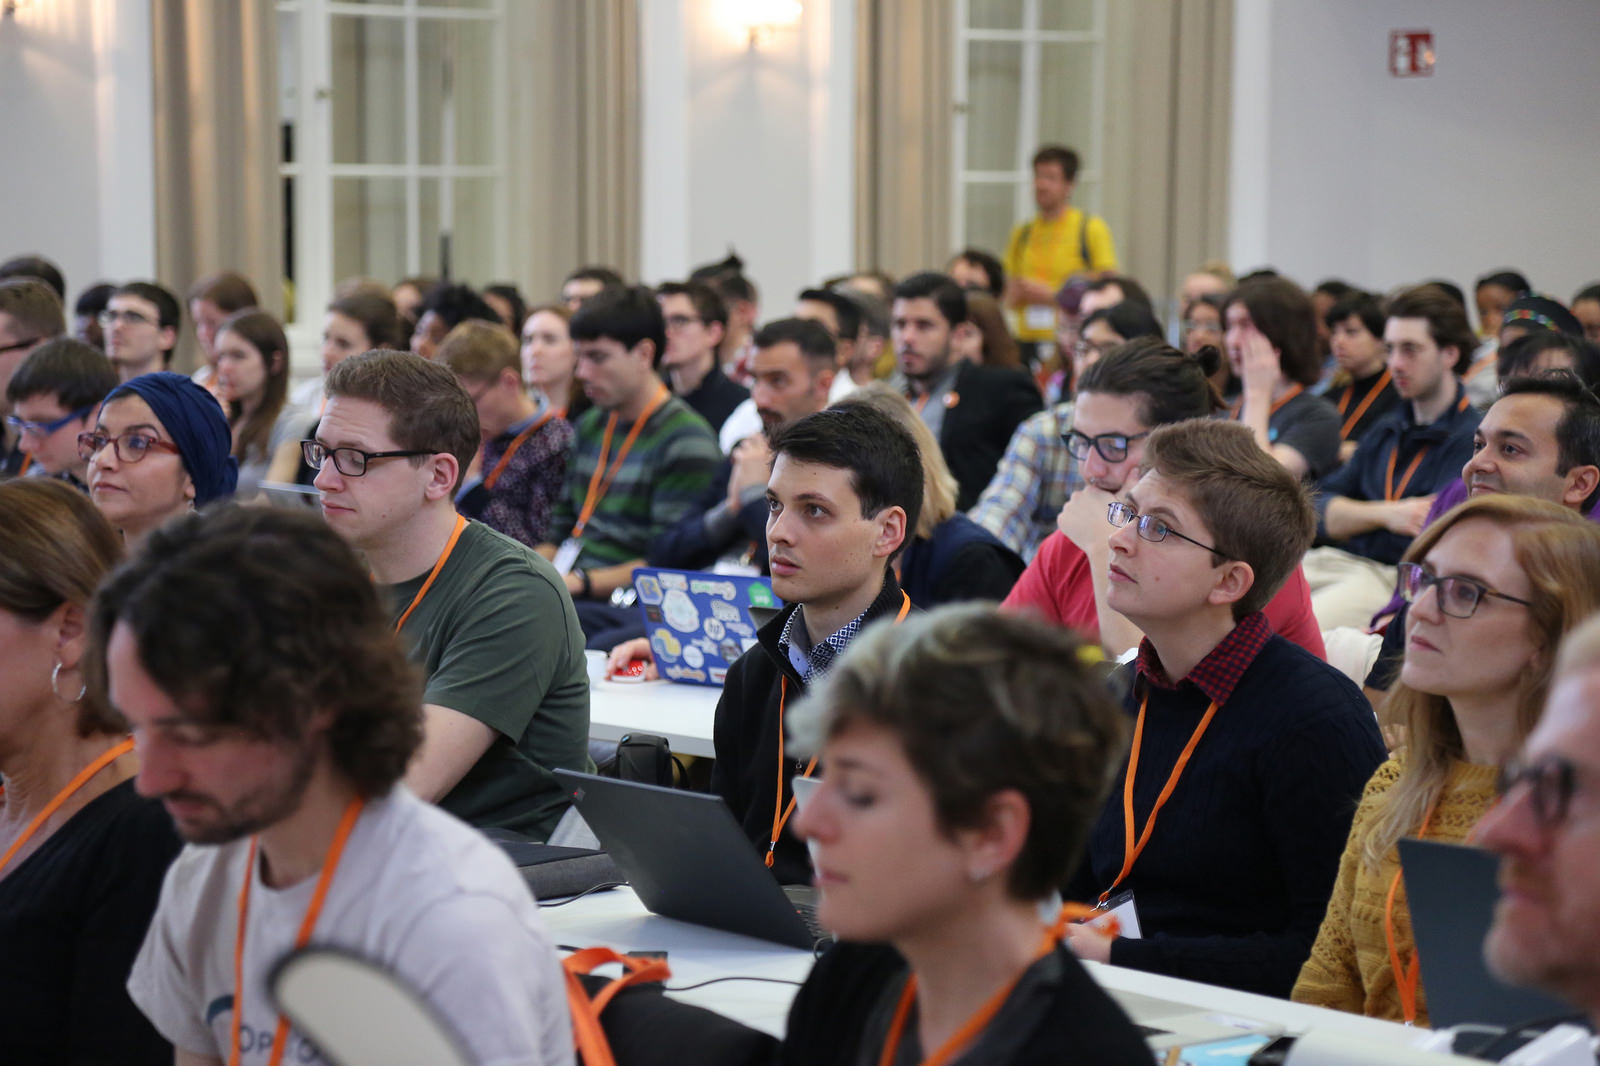 Scholars from around the world attended OpenCon 2017, held in Berlin, Germany. Photo by: Right to Research Coalition